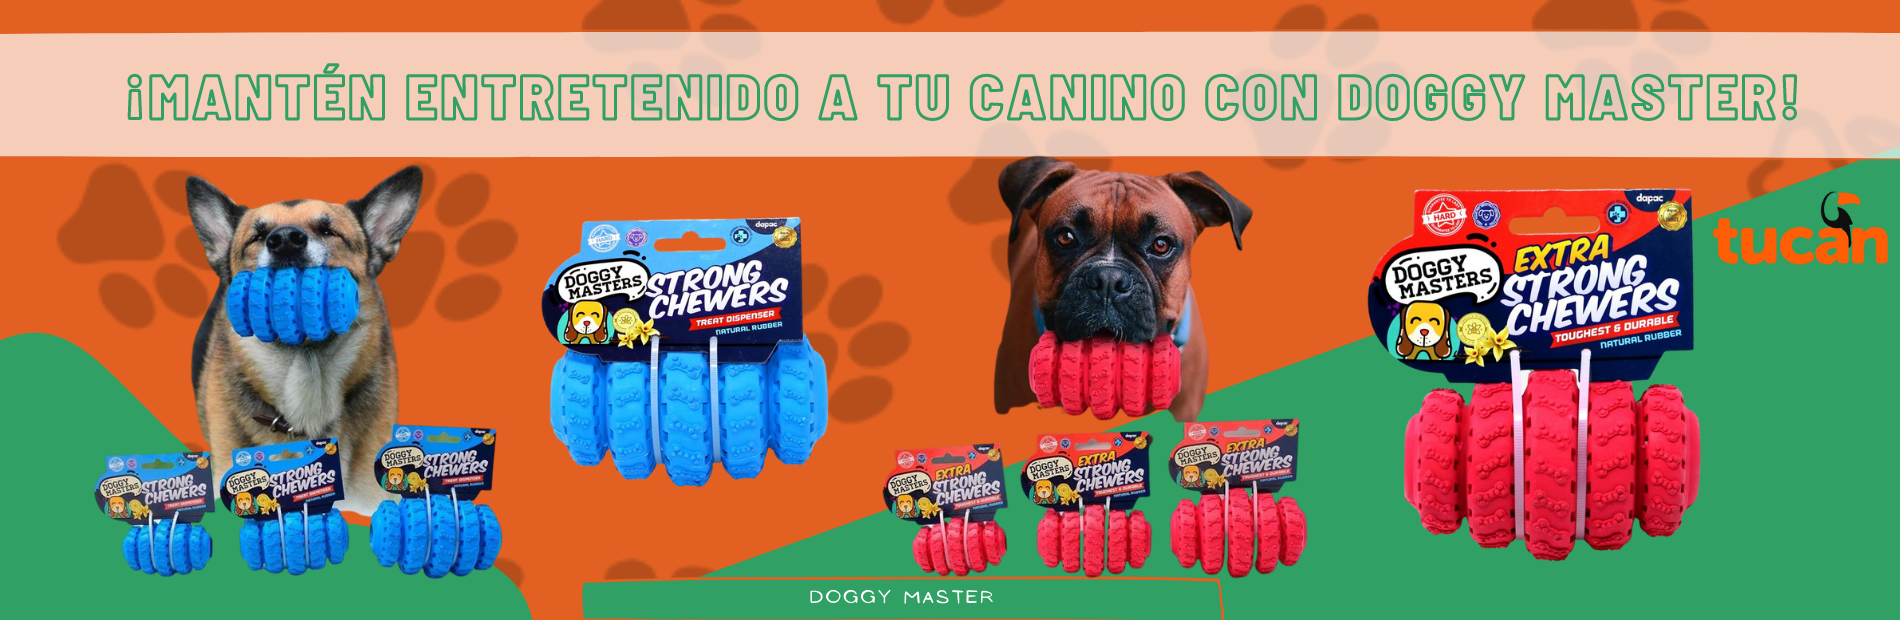 Doggy masters normal perro